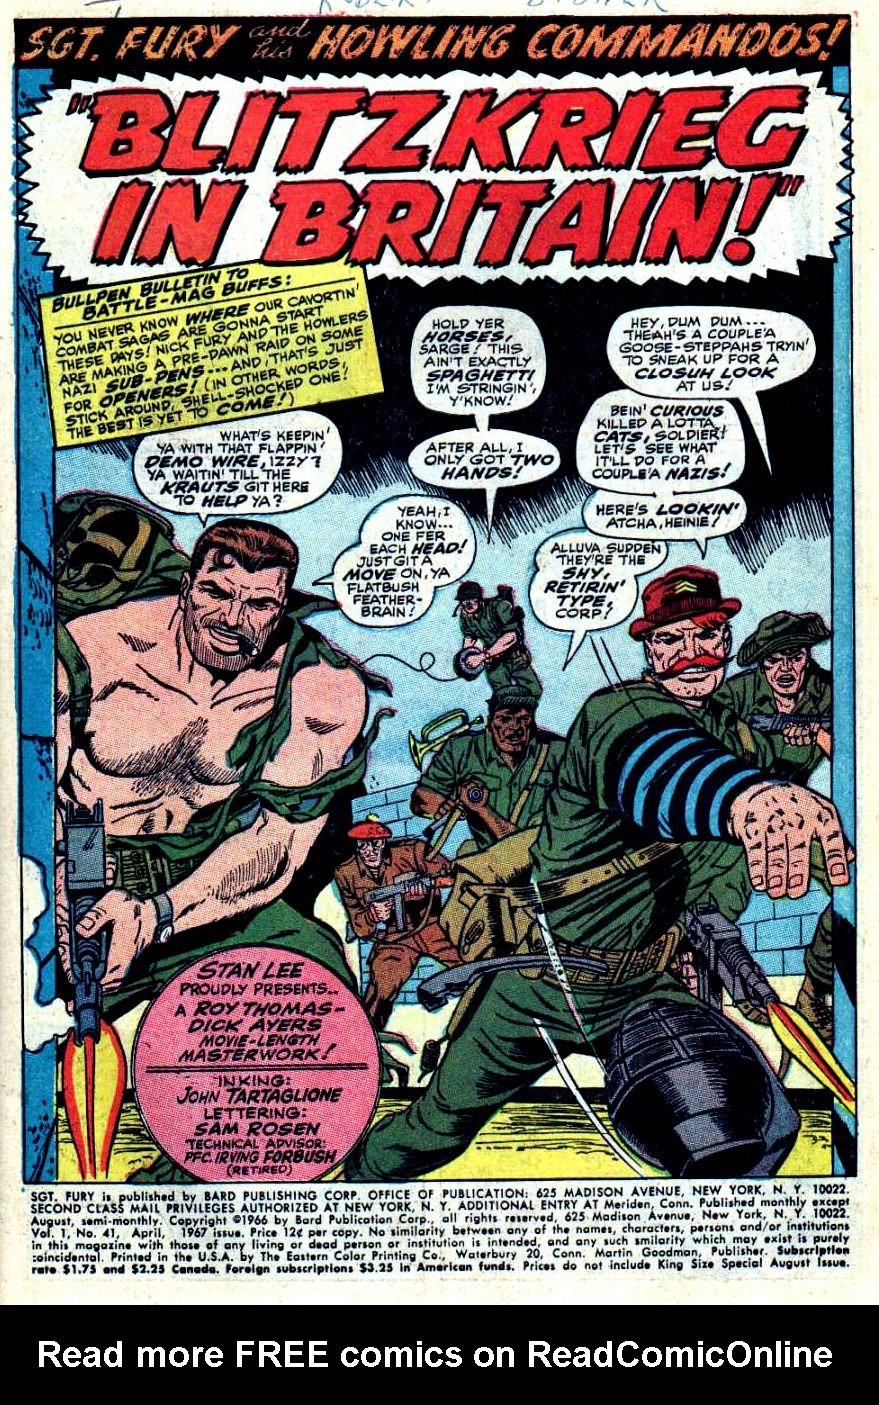 Read online Sgt. Fury comic -  Issue #41 - 3